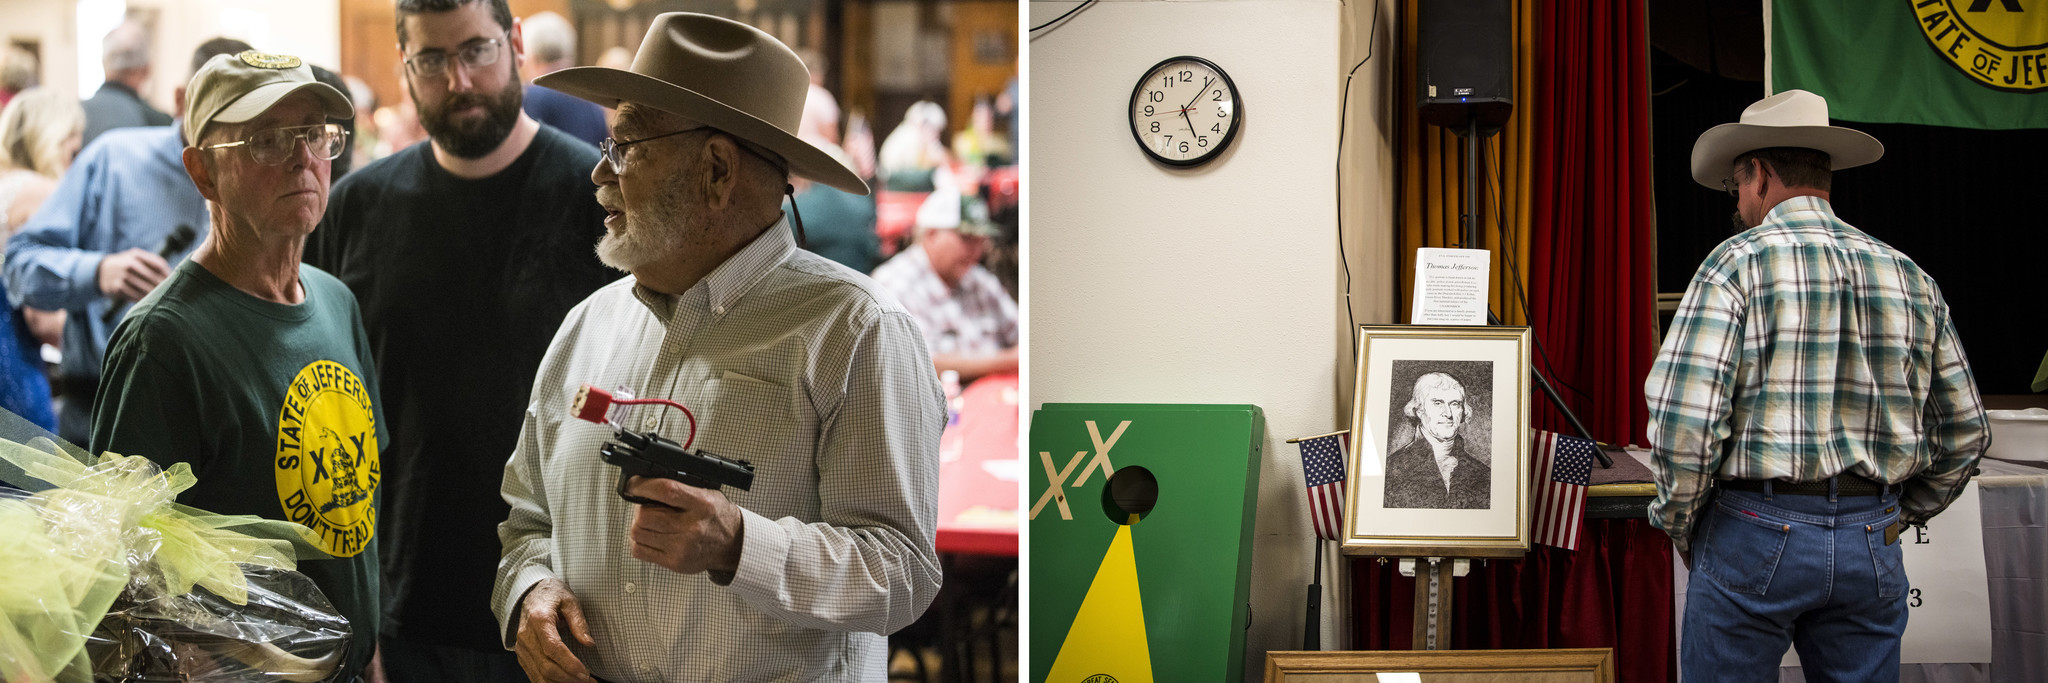 In California's rural, conservative north, there are big